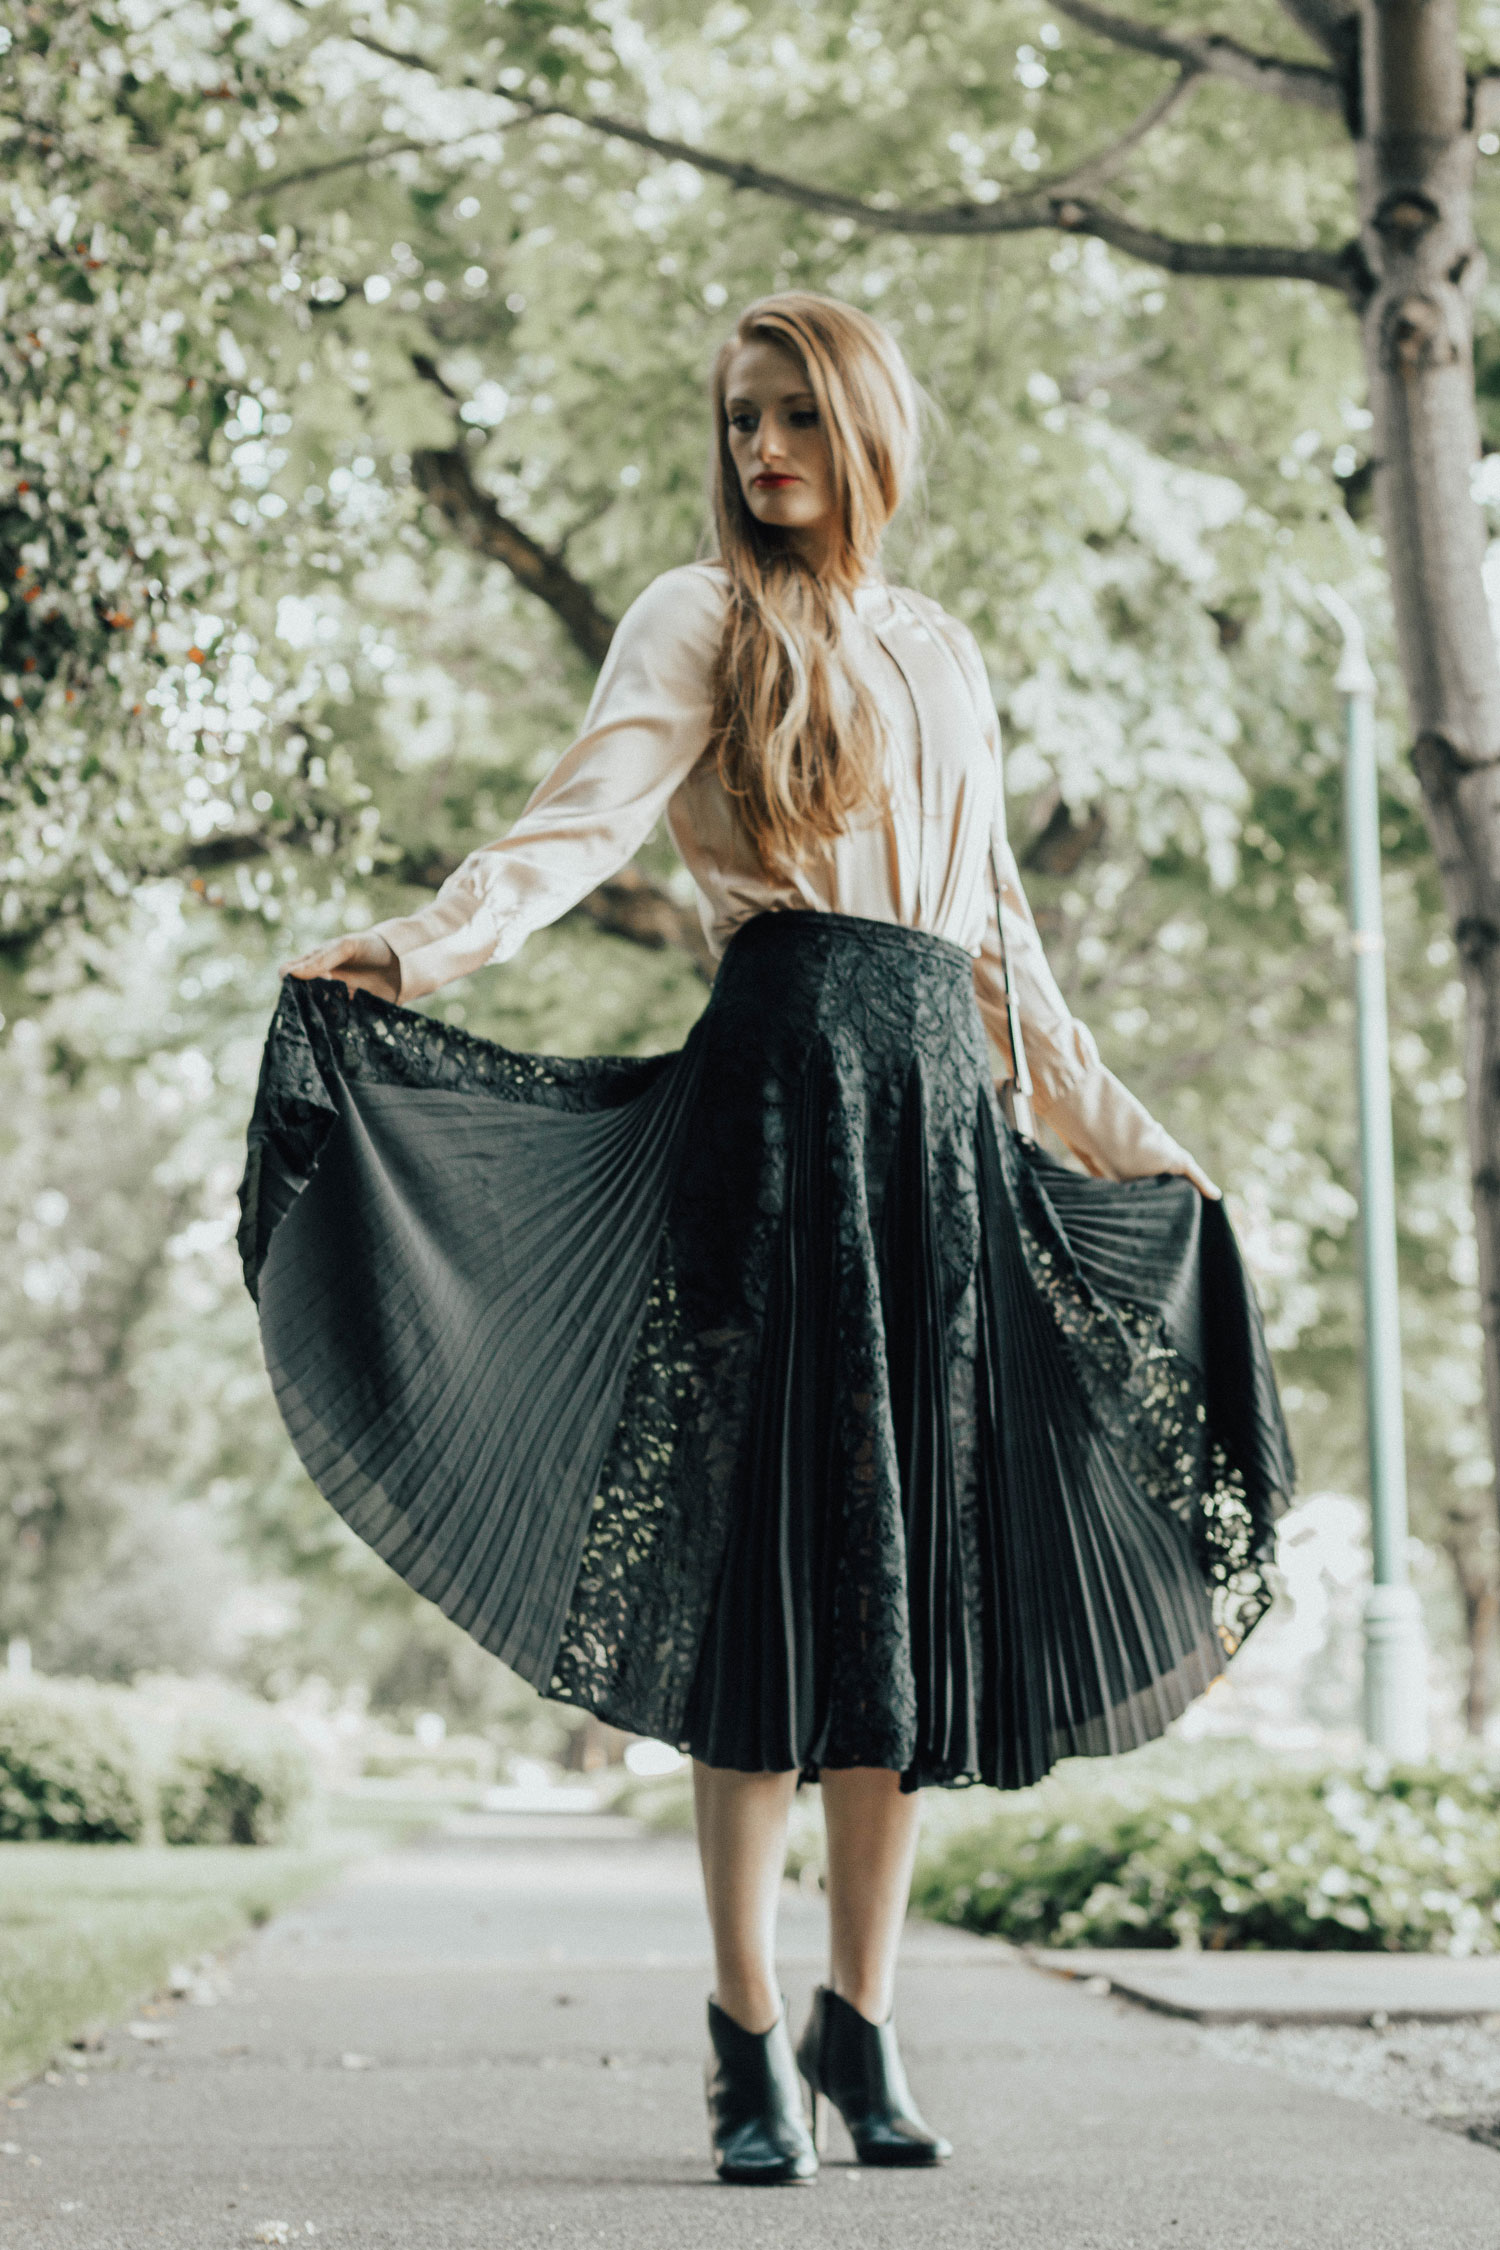 NA-KD Fashion Outfit Discount Code Blouse Skirt Style Outfit